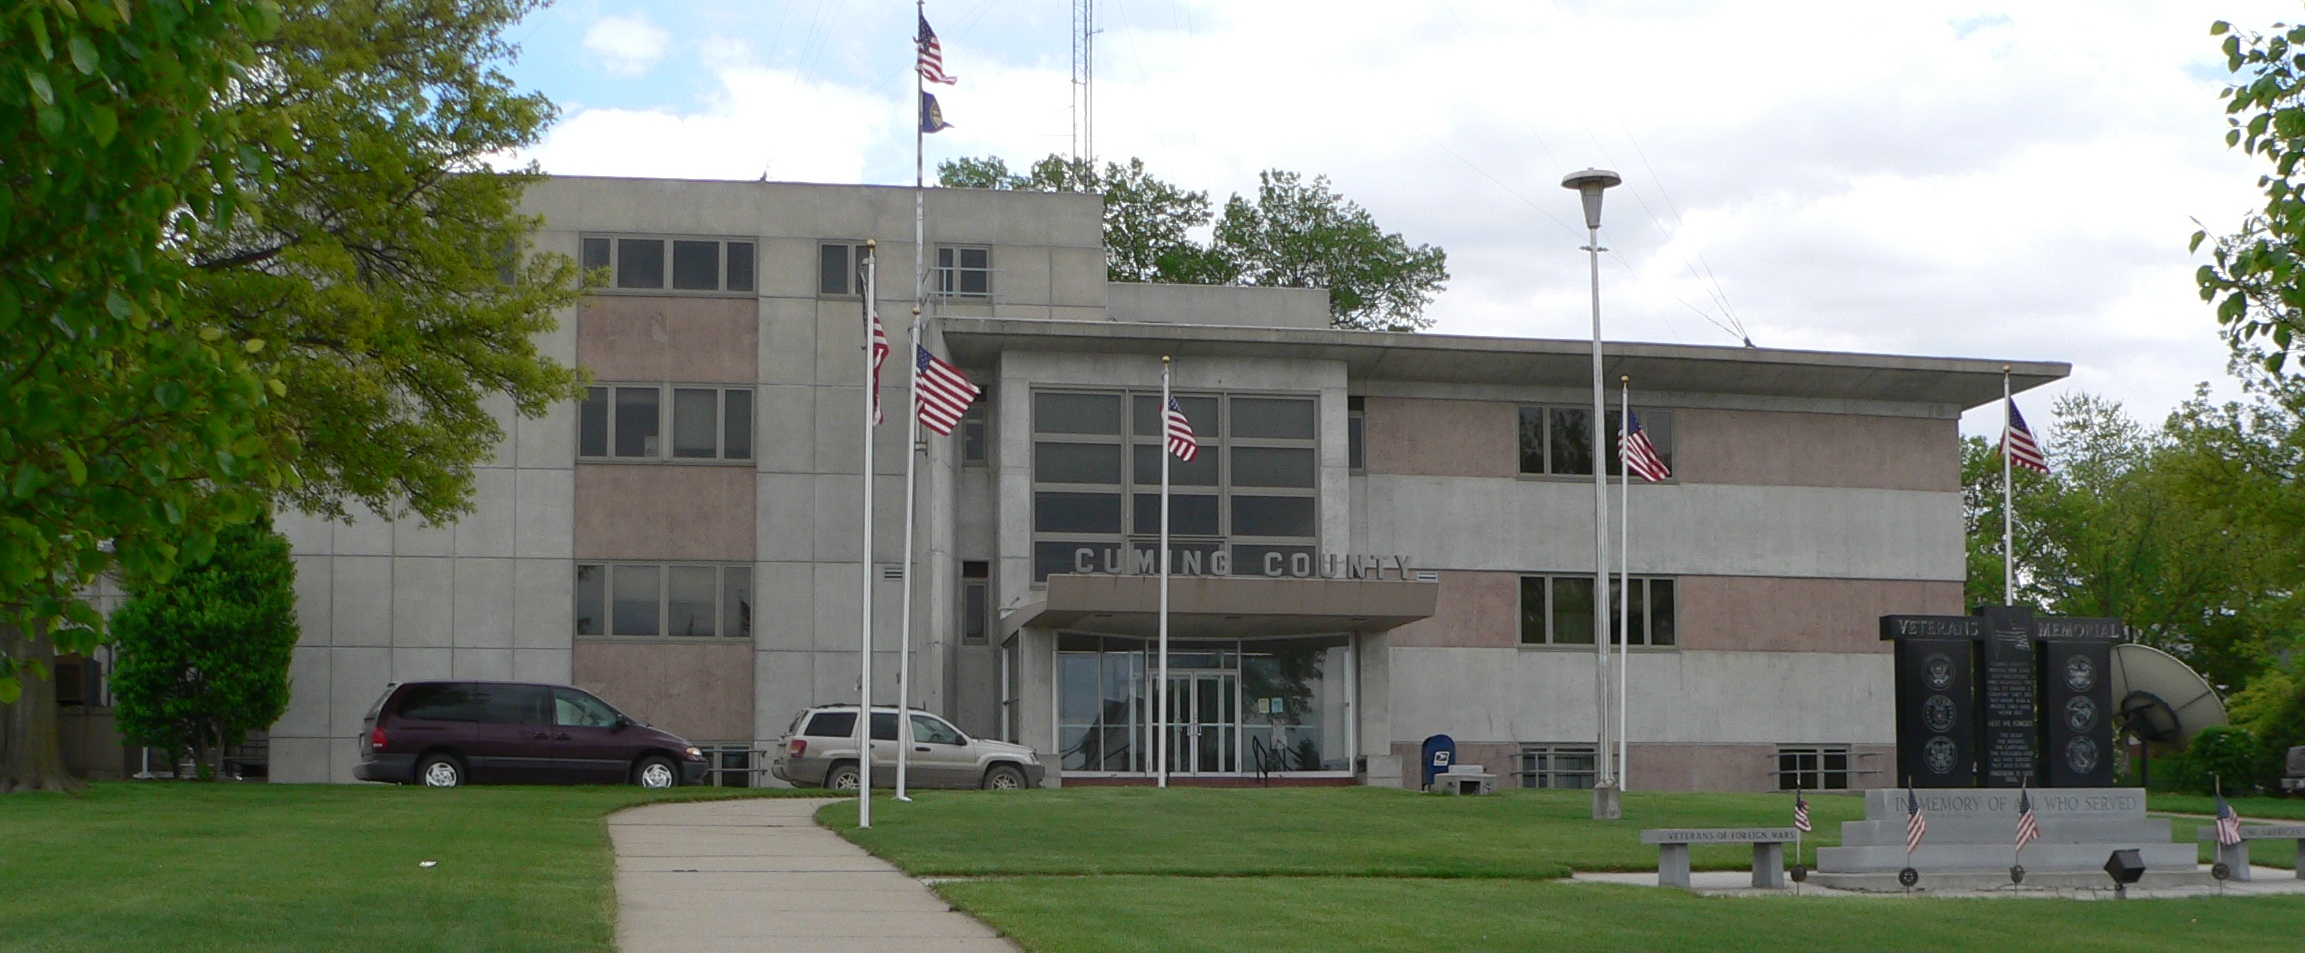 cuming county Find cuming county nebraska sheriff offices, departments, headquarters, jails, and detention centers sheriffs provide information on.